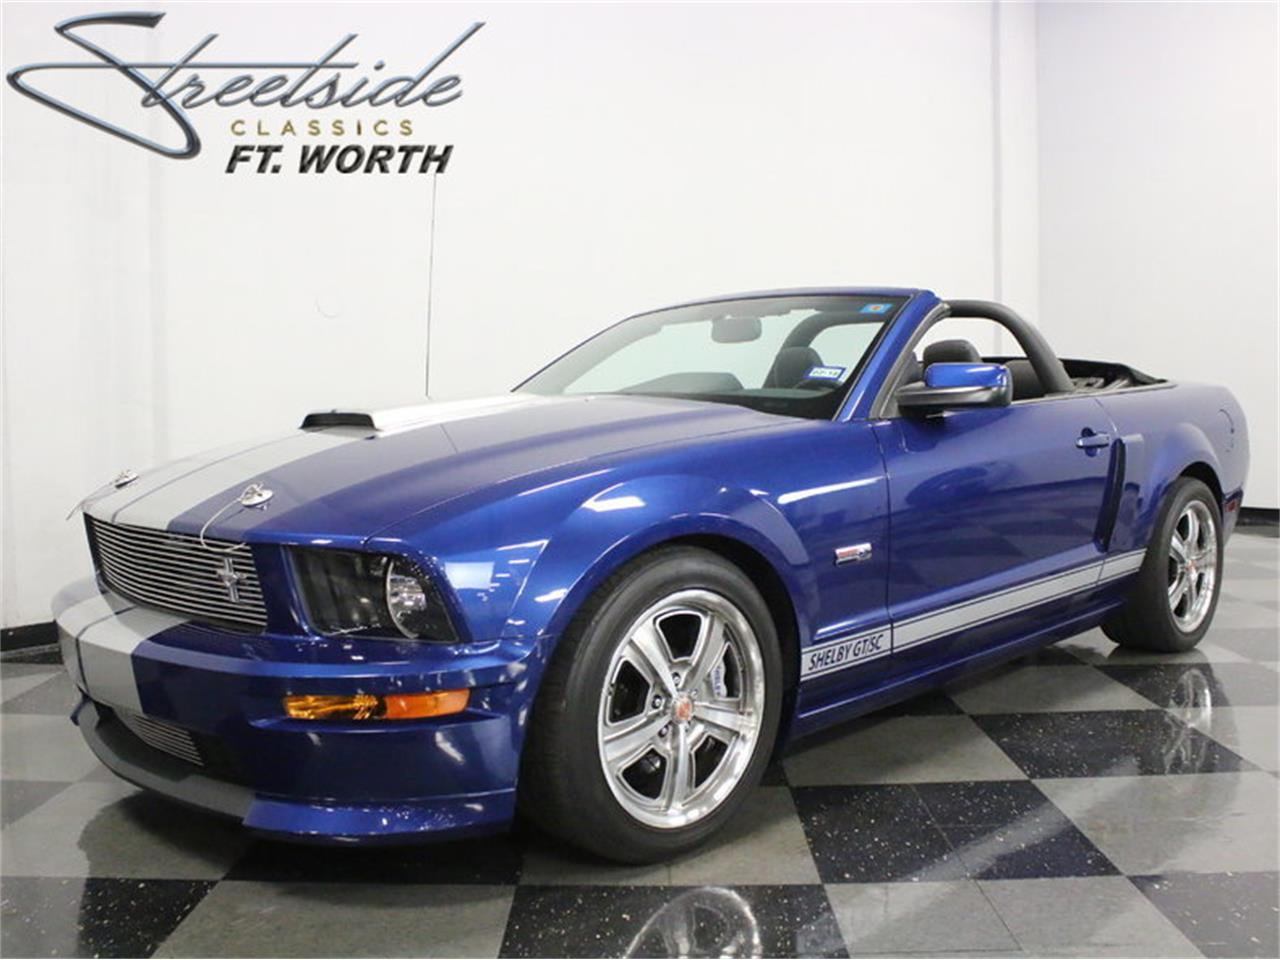 For sale 2008 ford mustang shelby gt sc in ft worth texas